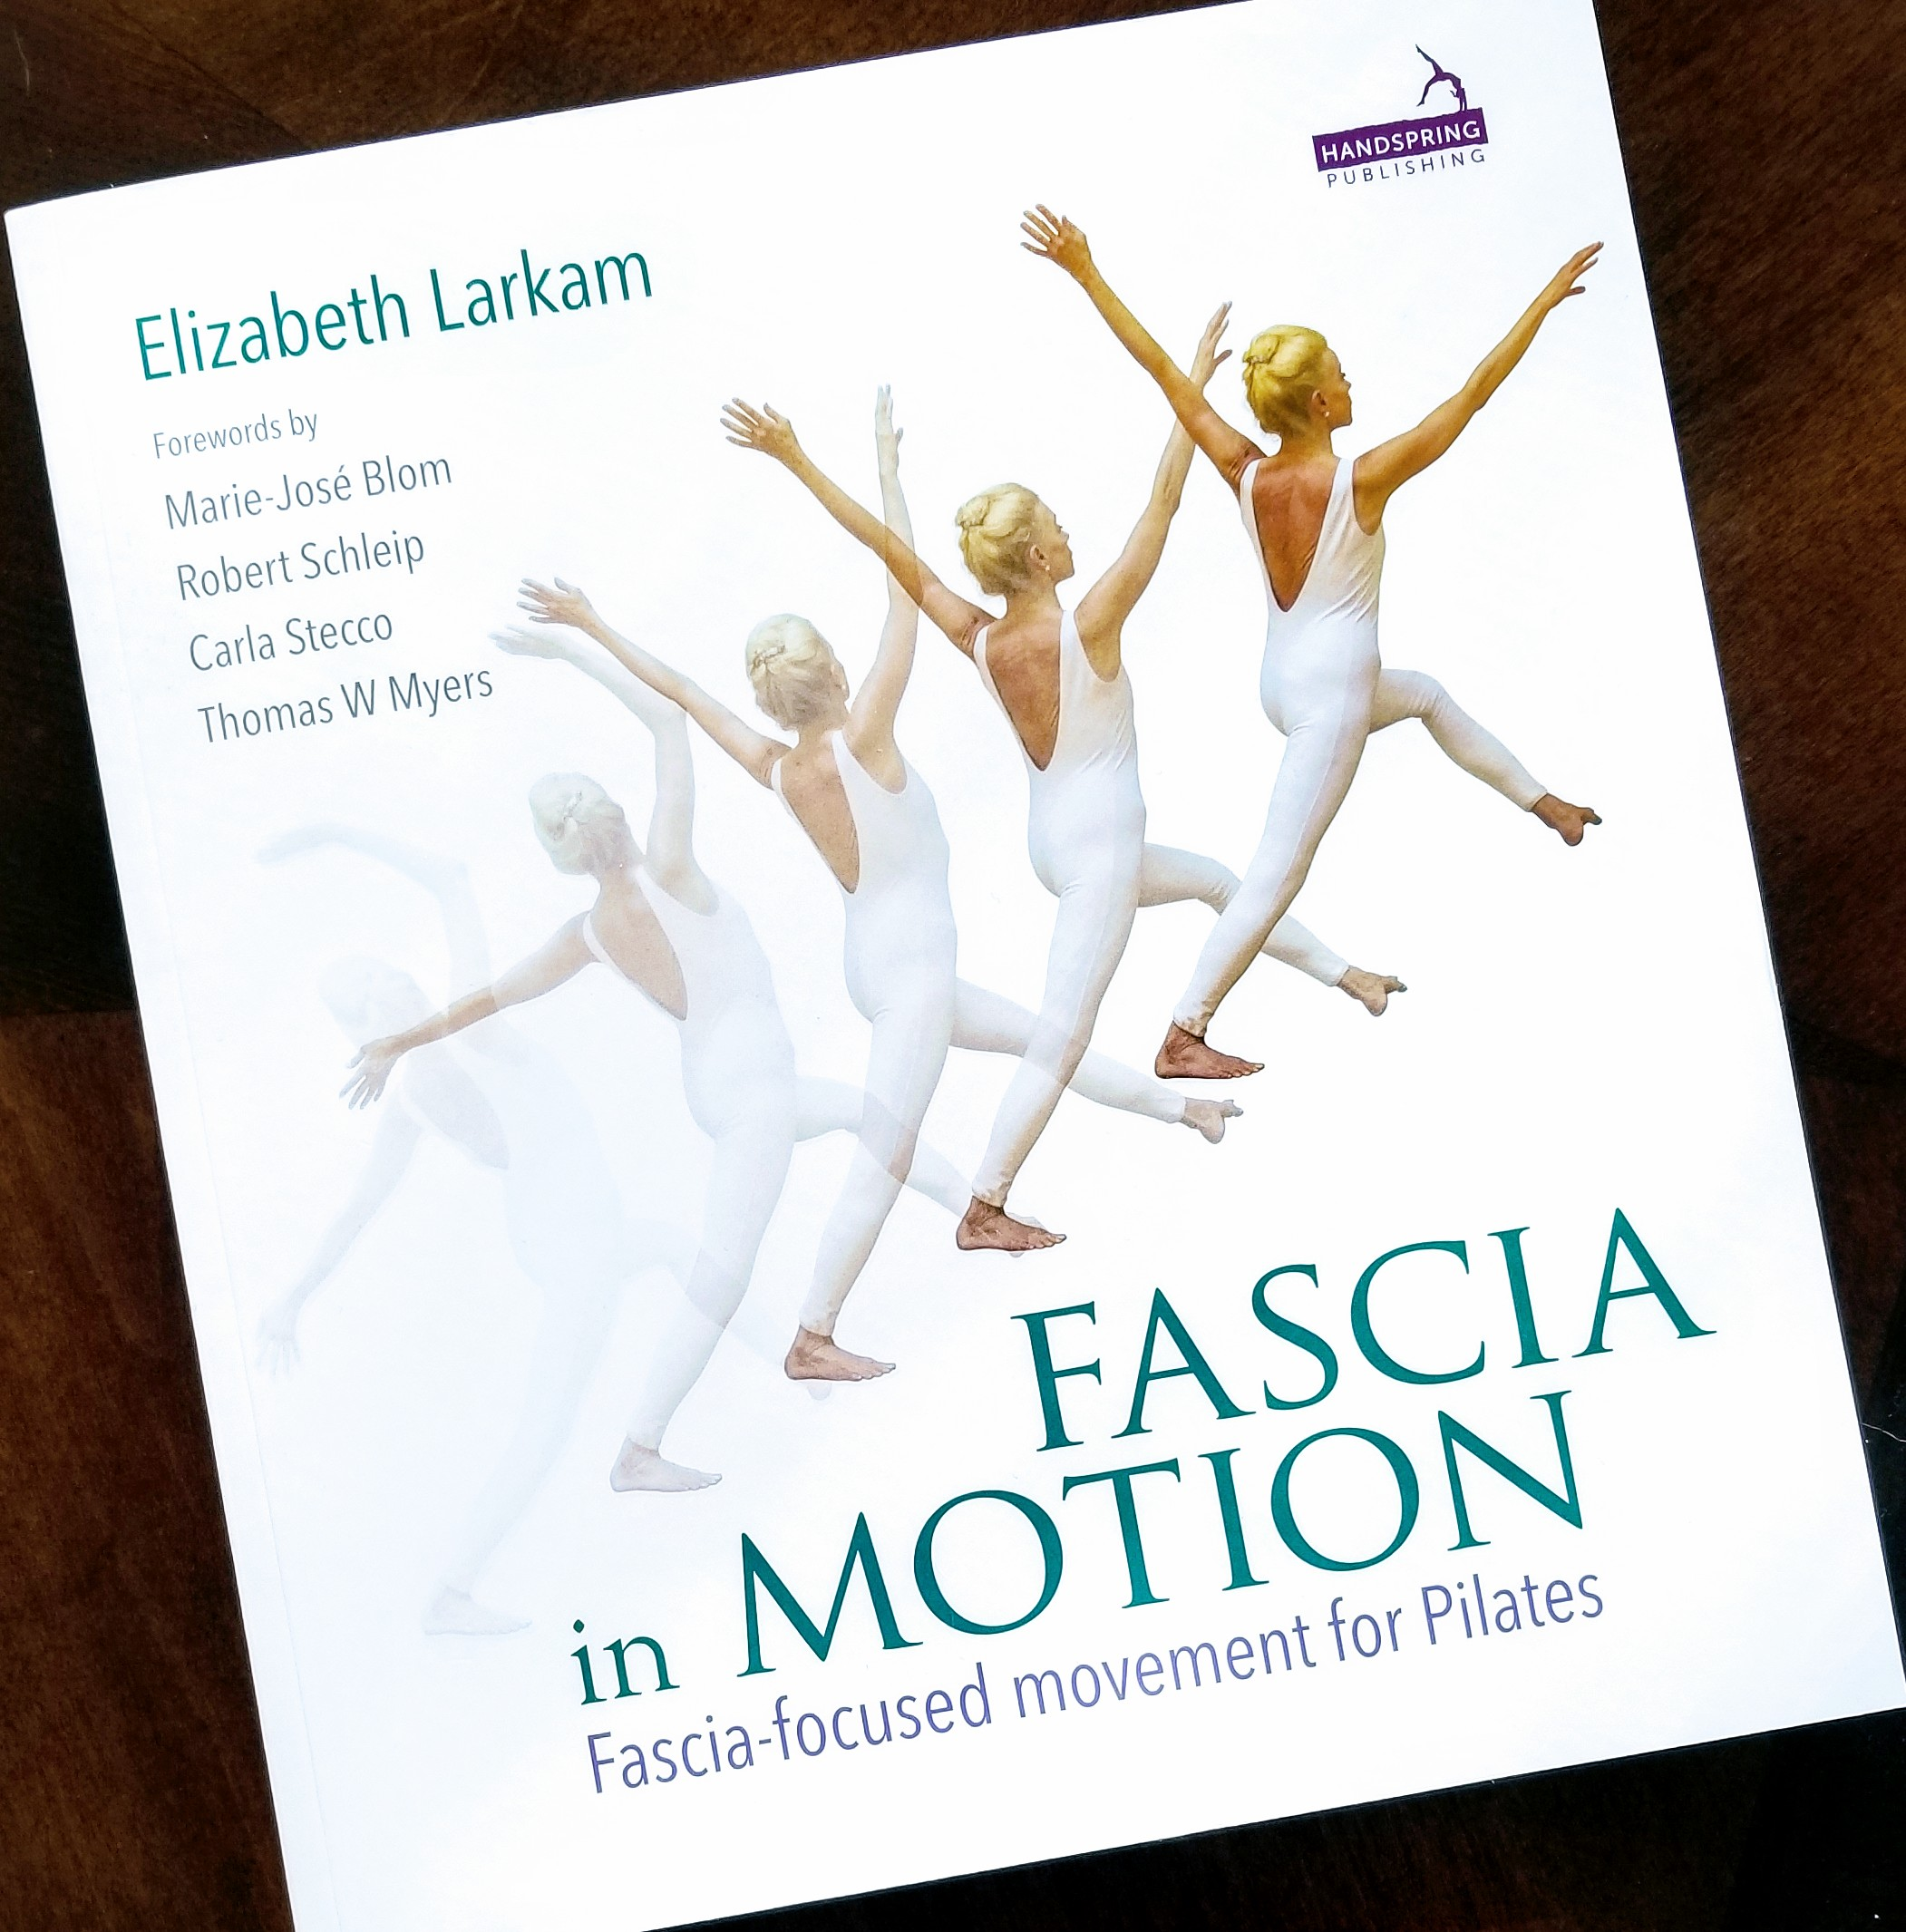 Holly Wallis discusses January 2019's BH Book Club selection: Fascia in Motion by Elizabeth Larkam